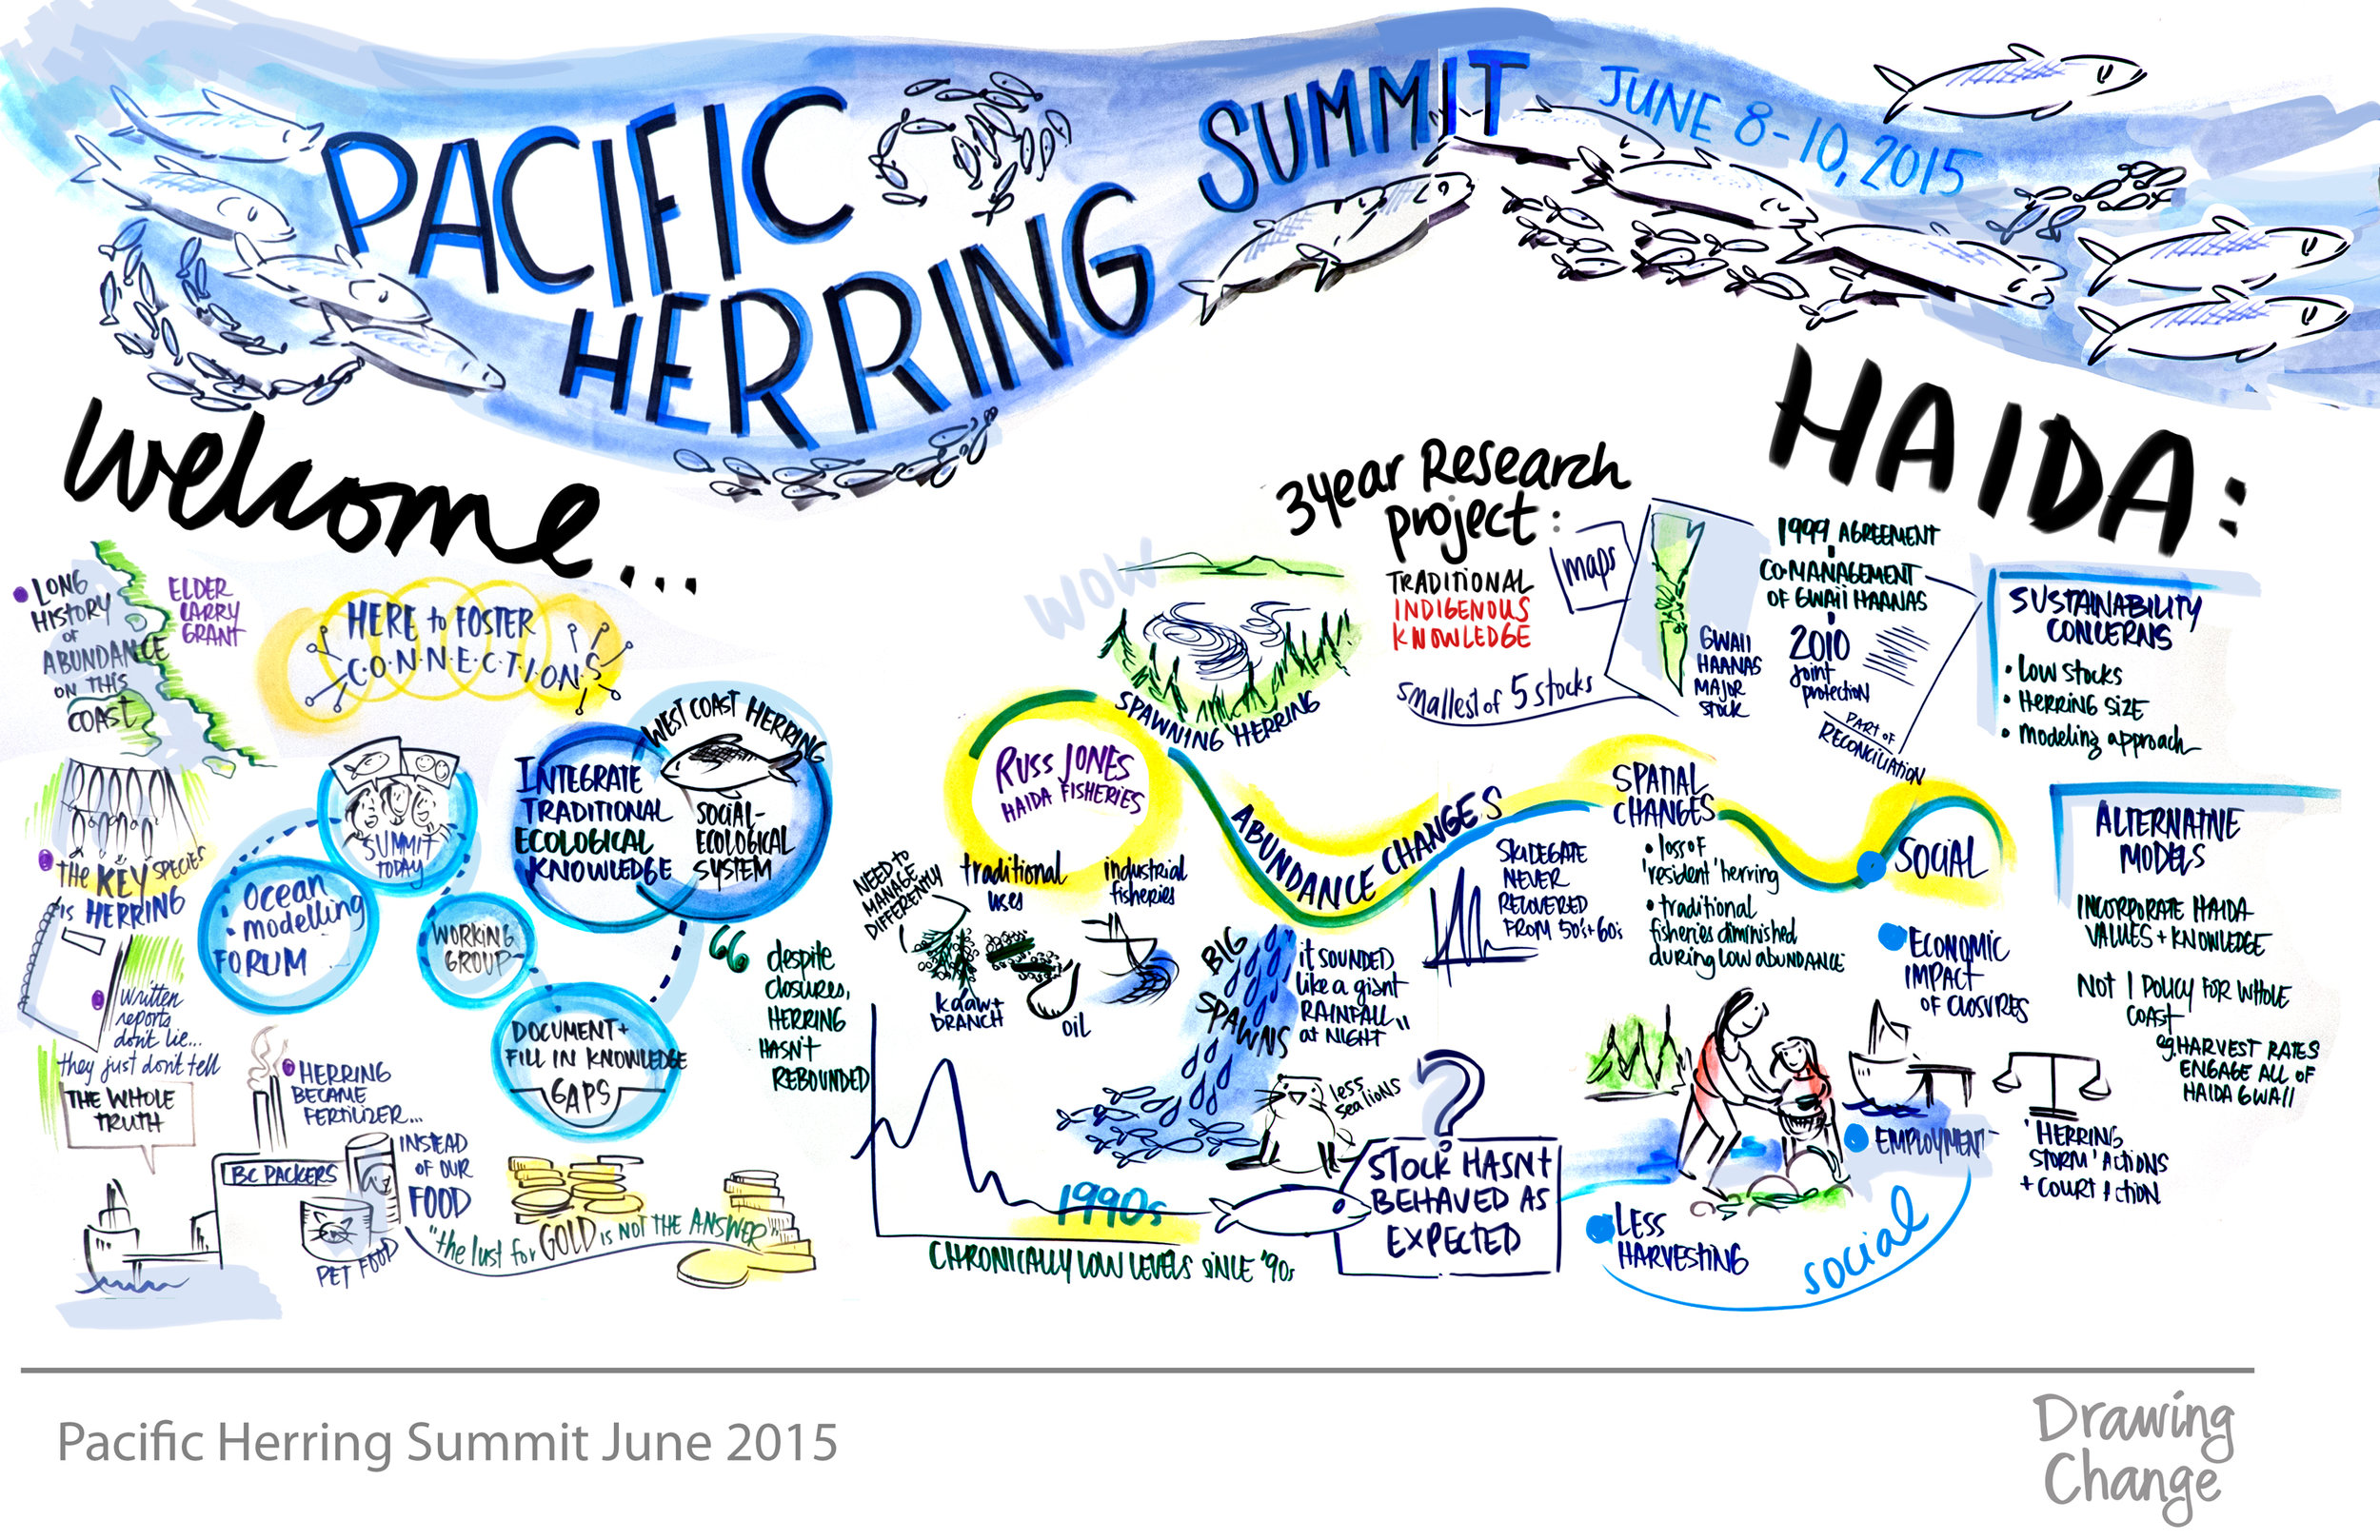 A visual representation of the perspectives on herring presented during the Ocean Modeling Forum's kickoff summit. Image courtesy of Sam Bradd.